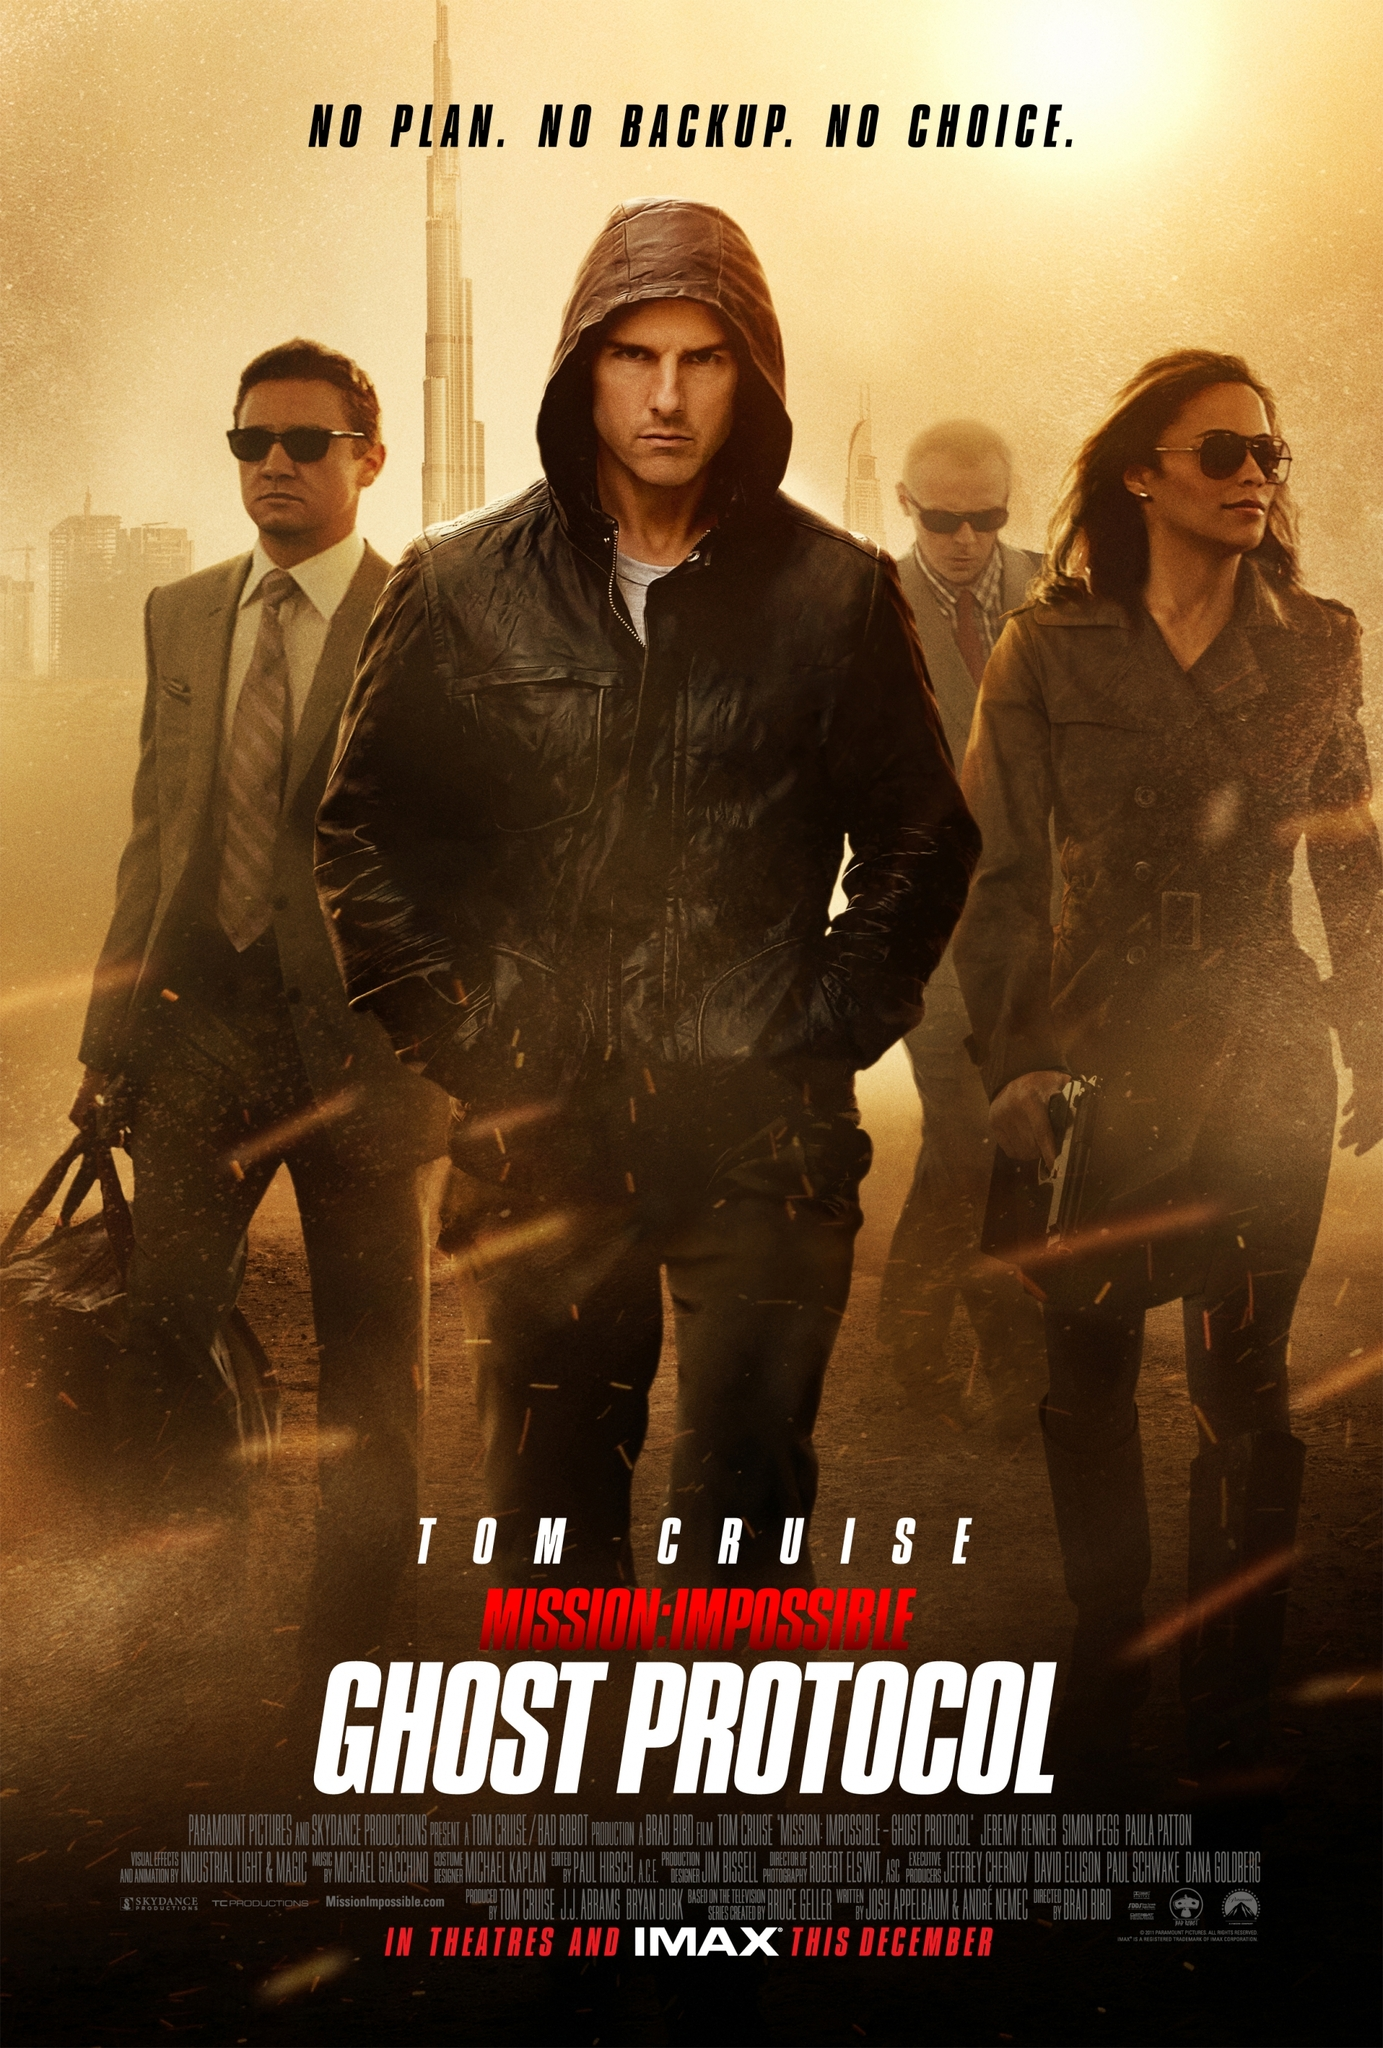 Mission: Impossible - Ghost Protocol (2011) BluRay 480p, 720p, 1080p & 4K-2160p